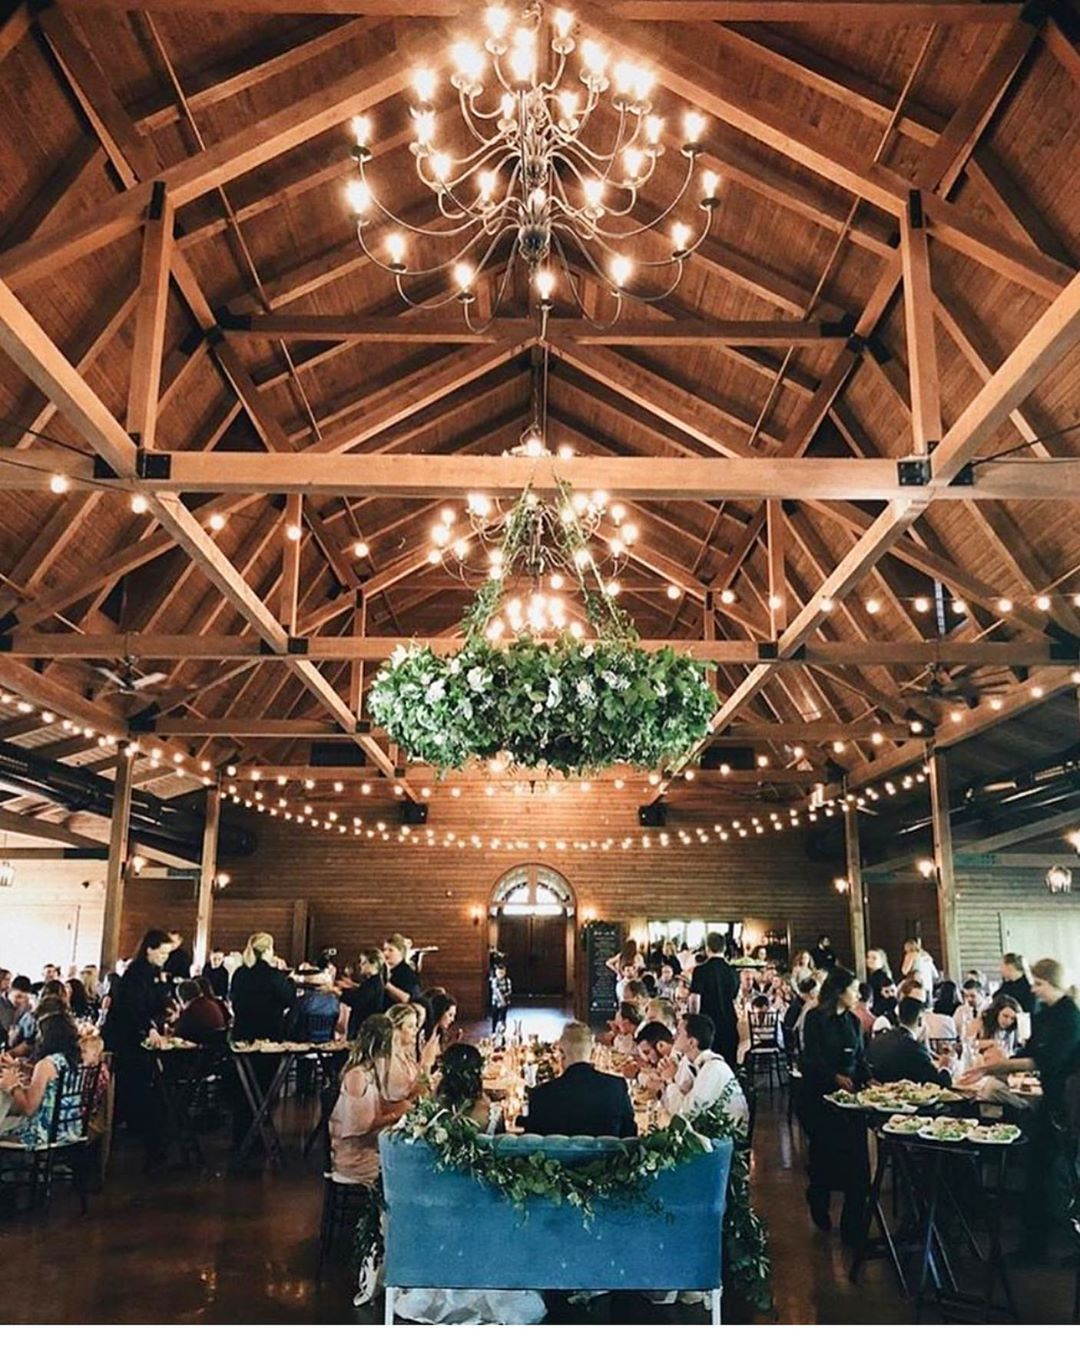 Barn Wedding Inspiration On Instagram Gorgeous Inspiration To Start The Week With Happy Monday Orchard Barn Wedding Inspiration Barn Wedding Ridge Farm